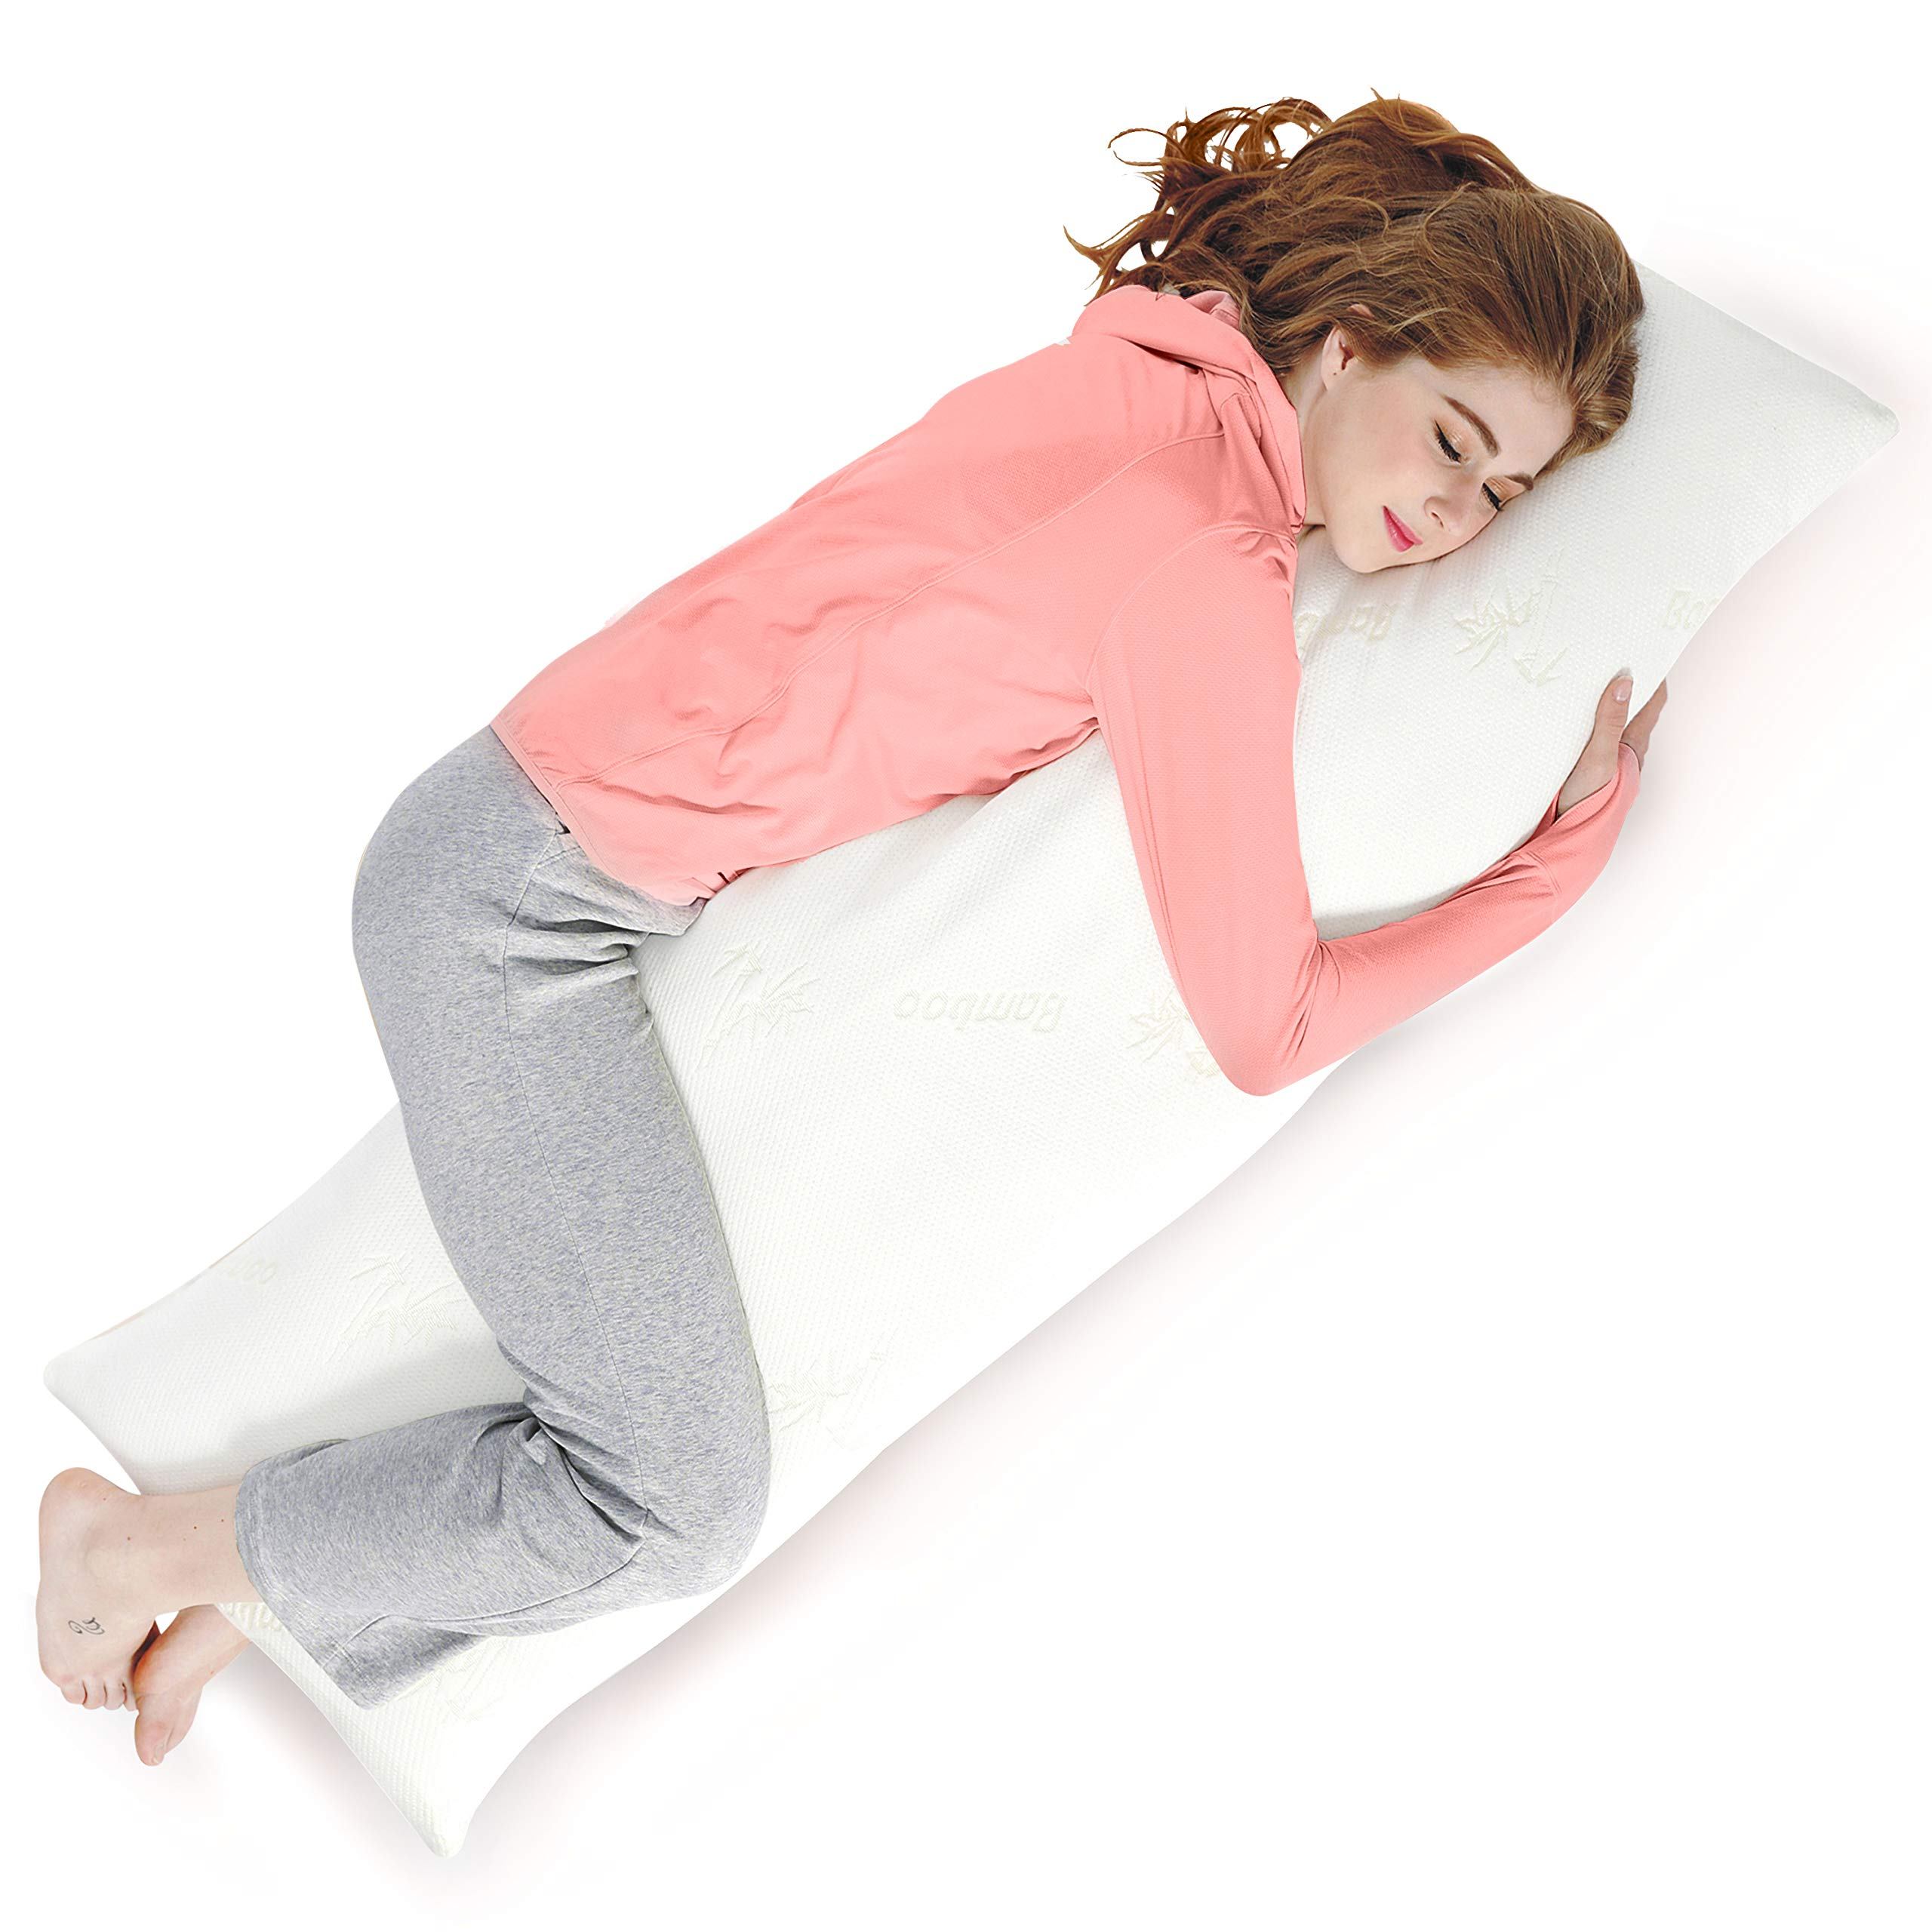 AmazingDreams Full Body Pillow - Side Sleeper Pillow and Pregnancy Pillow with Washable Bamboo Cover by Amazing Dreams (Image #1)